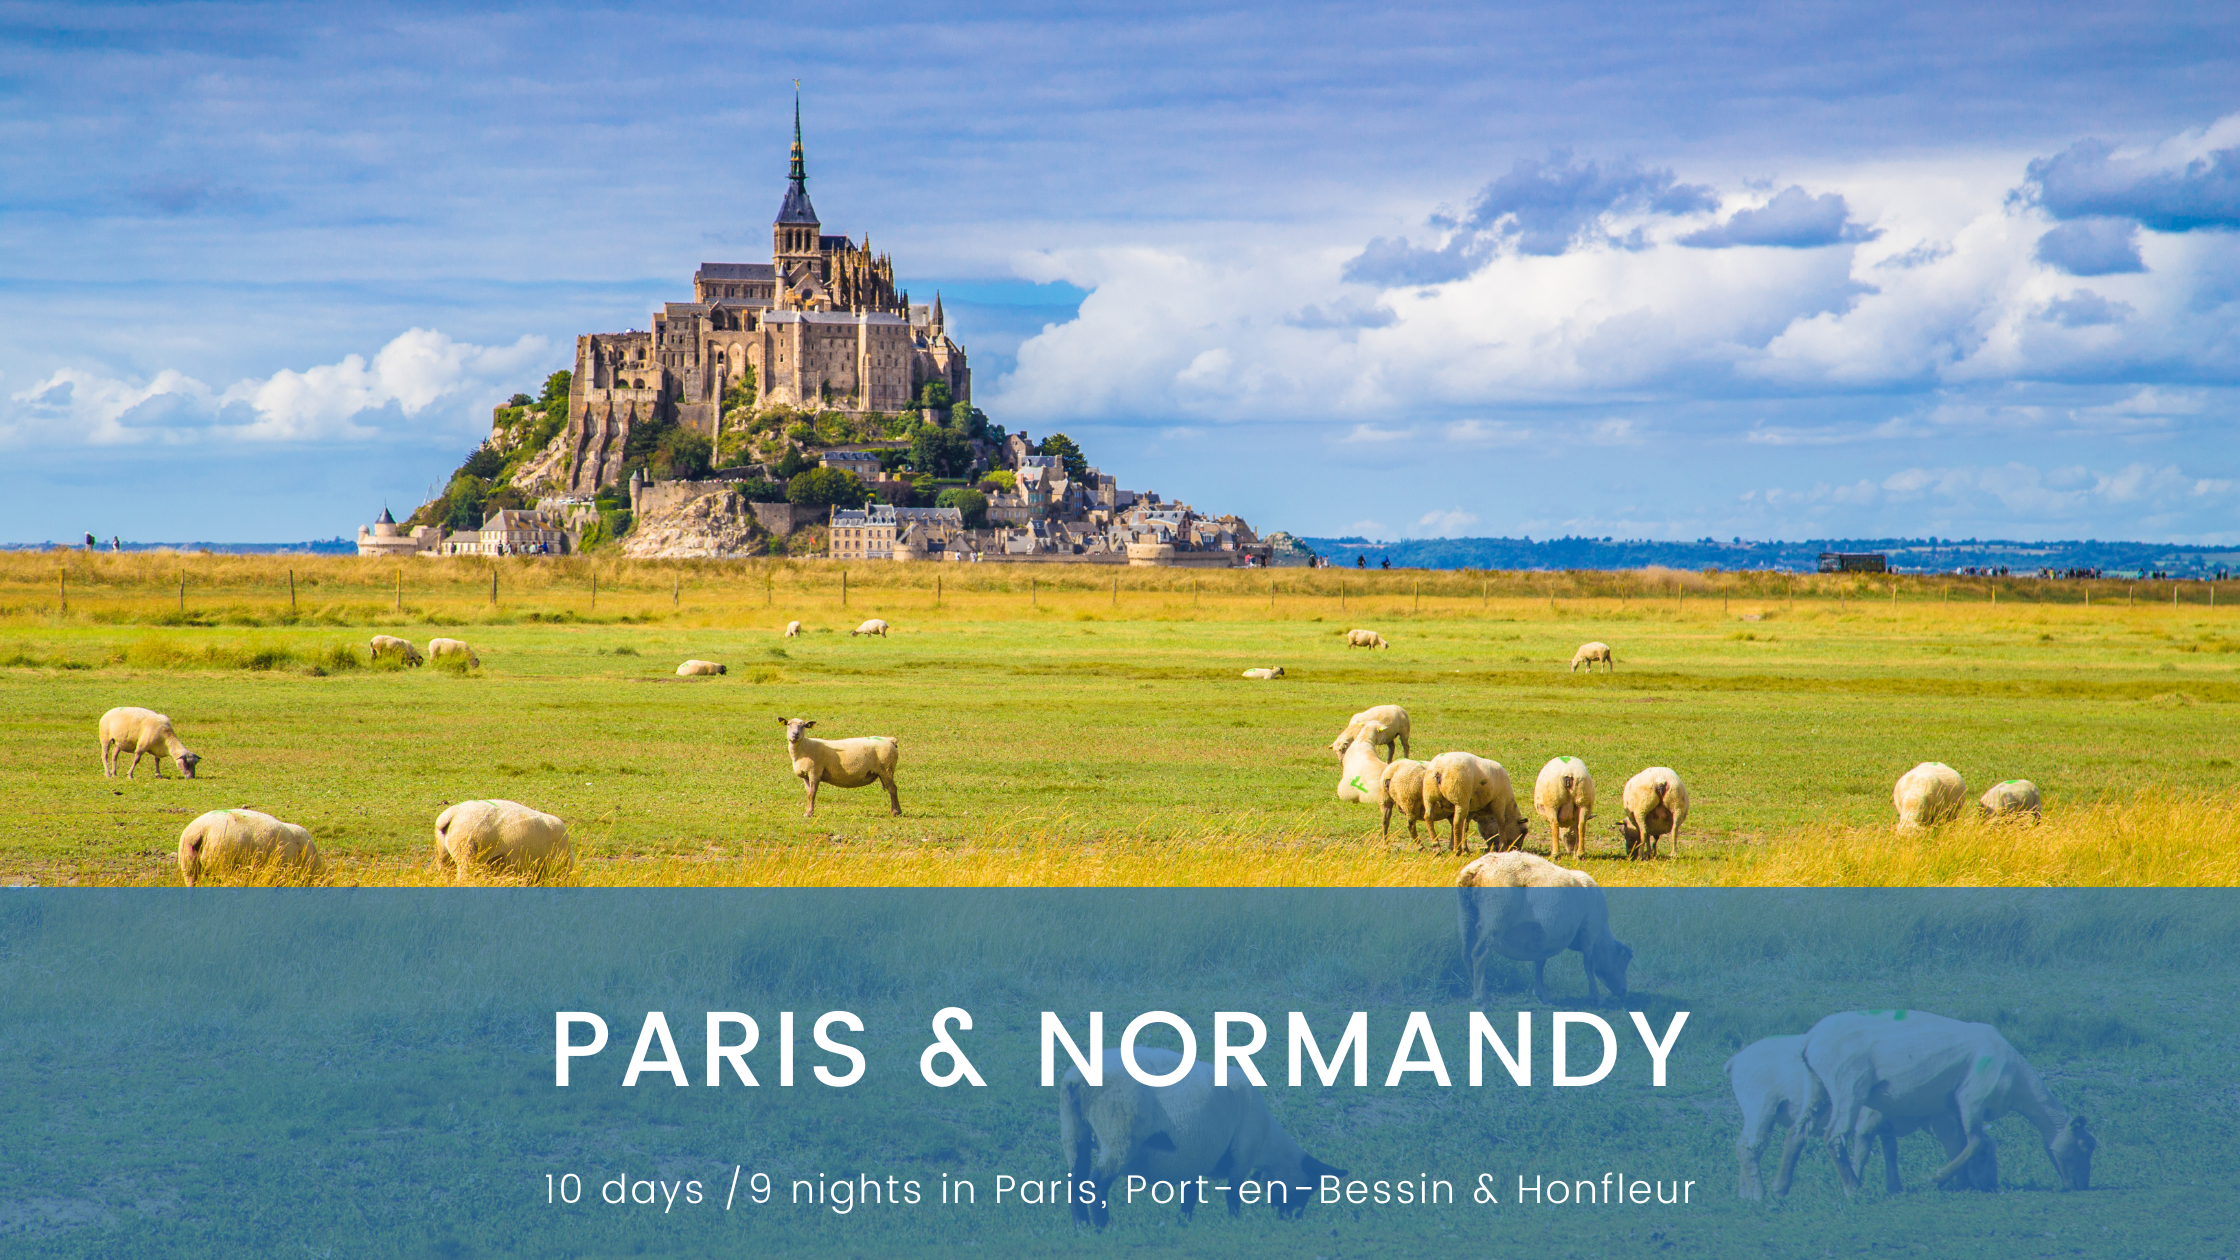 Paris & Normandy